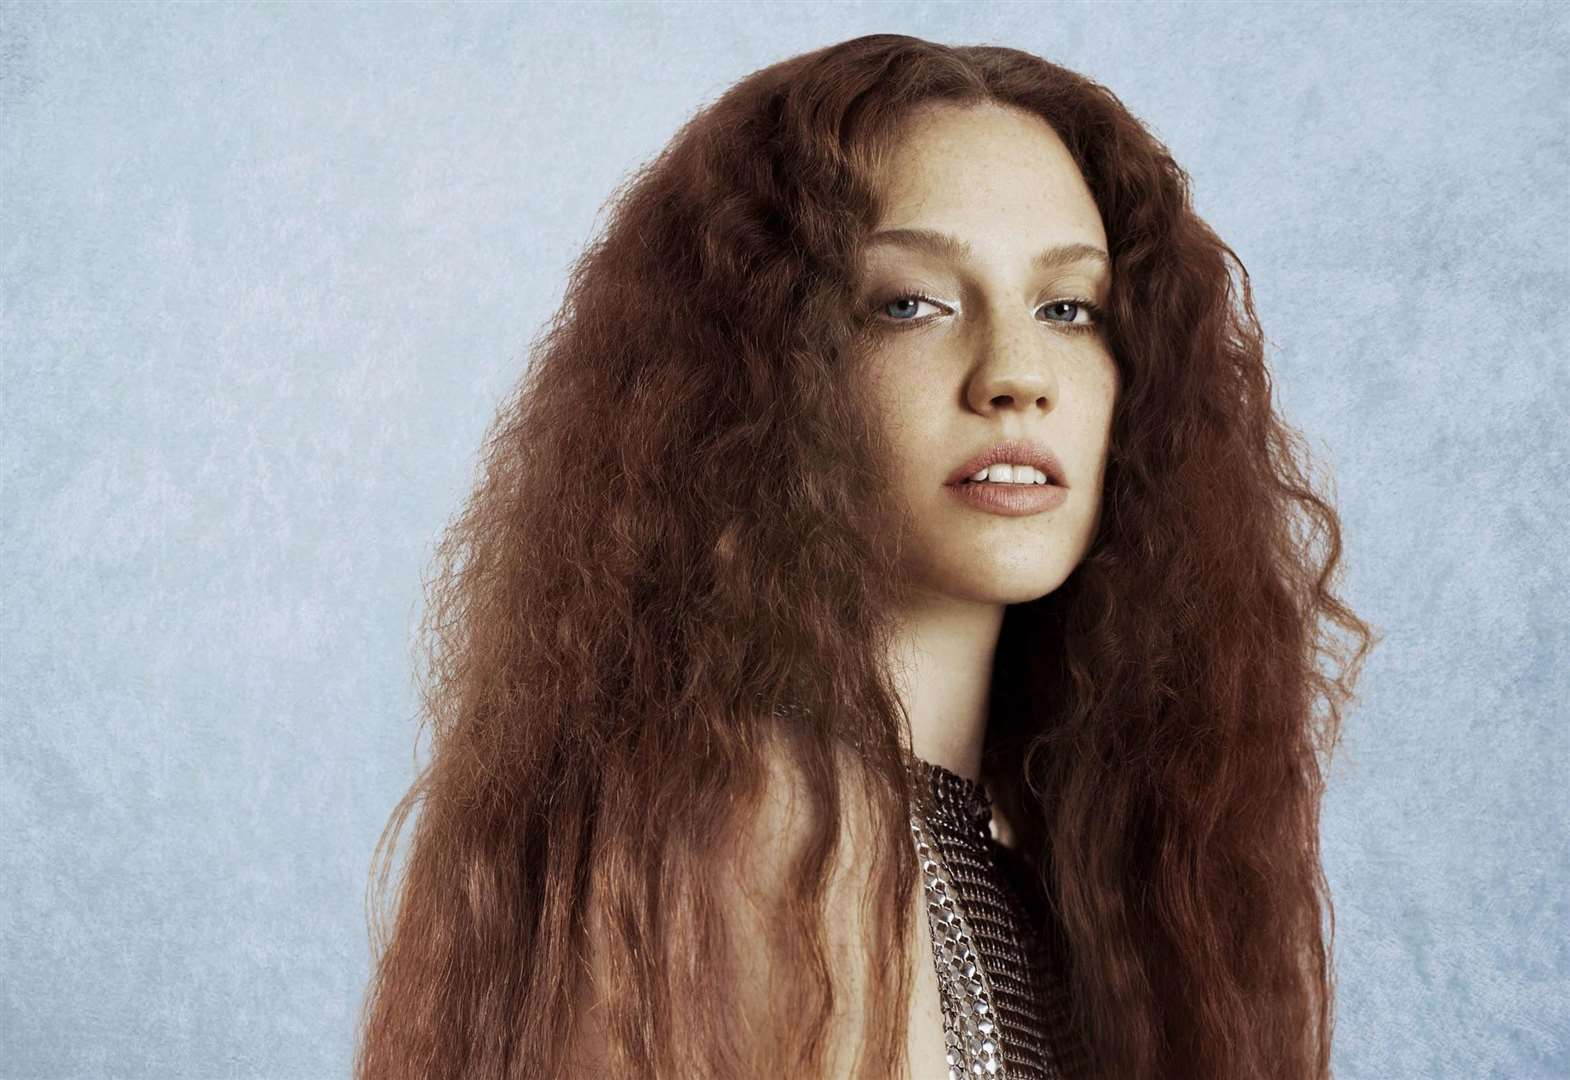 Jess Glynne to take stage in 2019 at Thetford Forest gig